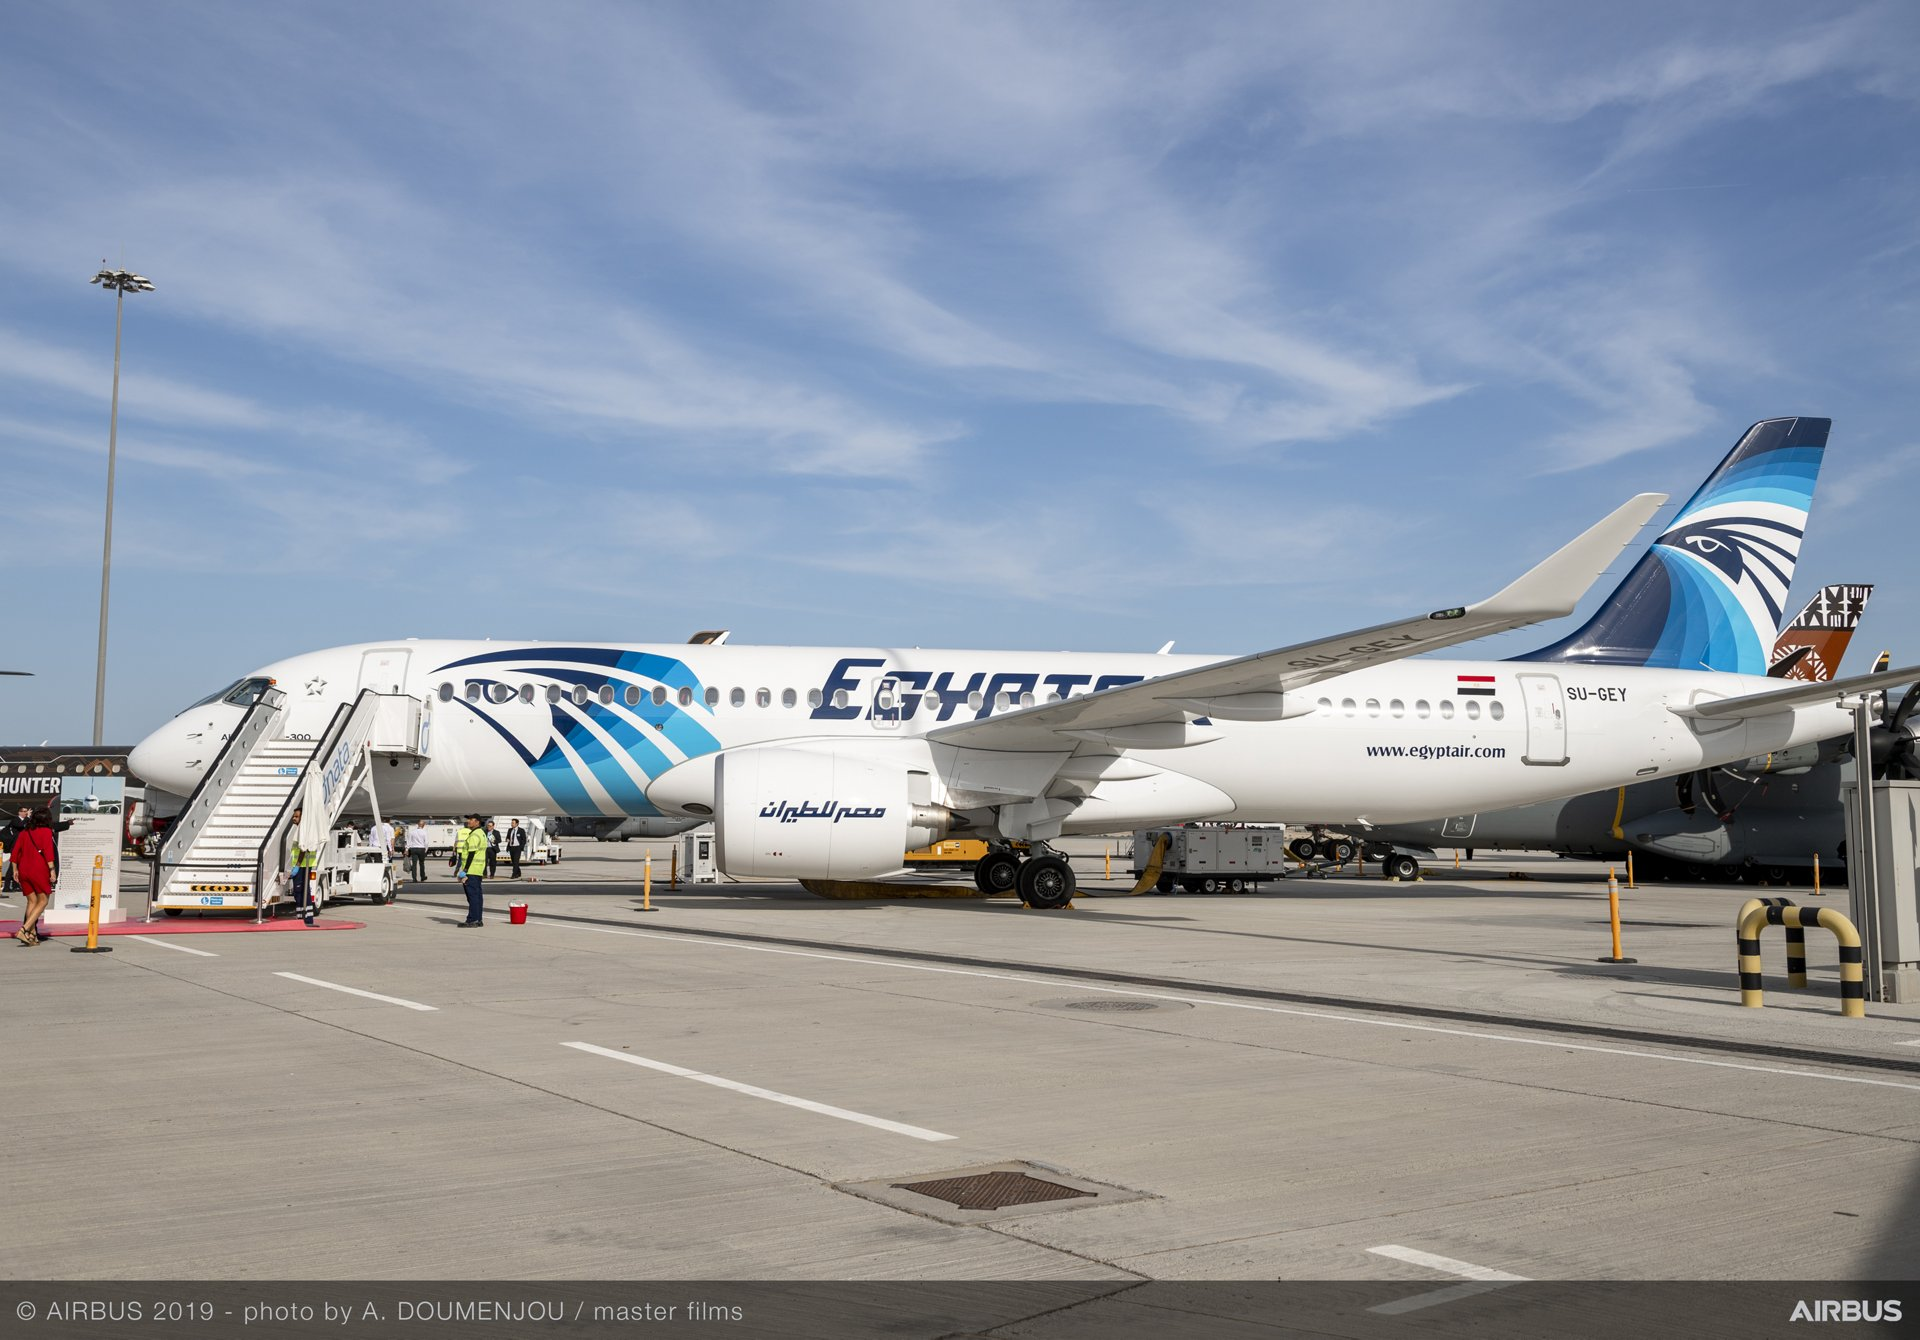 An A220-300 for EGYPTAIR – which became the first A220 operator based in the Middle East and North African region earlier this year – is among the Airbus commercial aircraft on static display at the 2019 Dubai Airshow